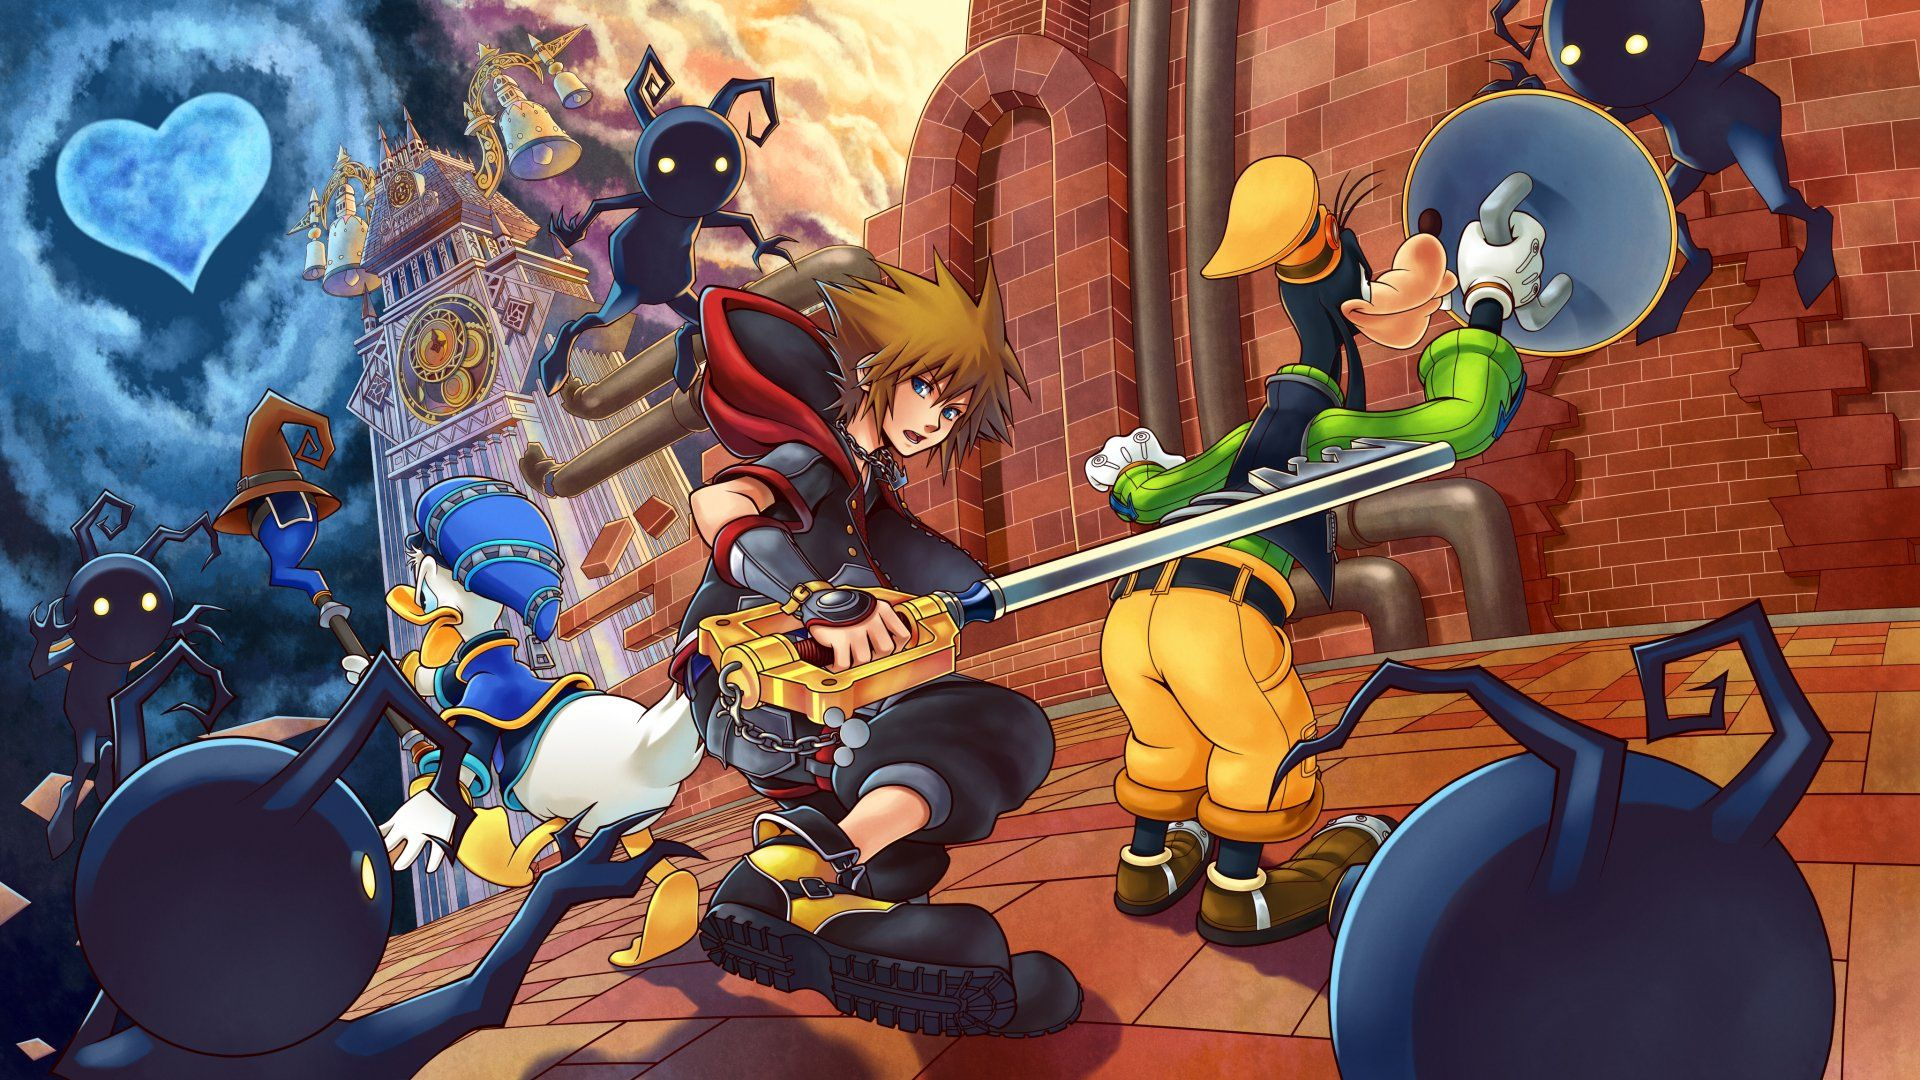 Kingdom Hearts Sora Wallpapers High Quality Resolution As Wallpaper Hd Sotoak Kingdom Hearts Wallpaper Iphone Sora Kingdom Hearts Kingdom Hearts Wallpaper